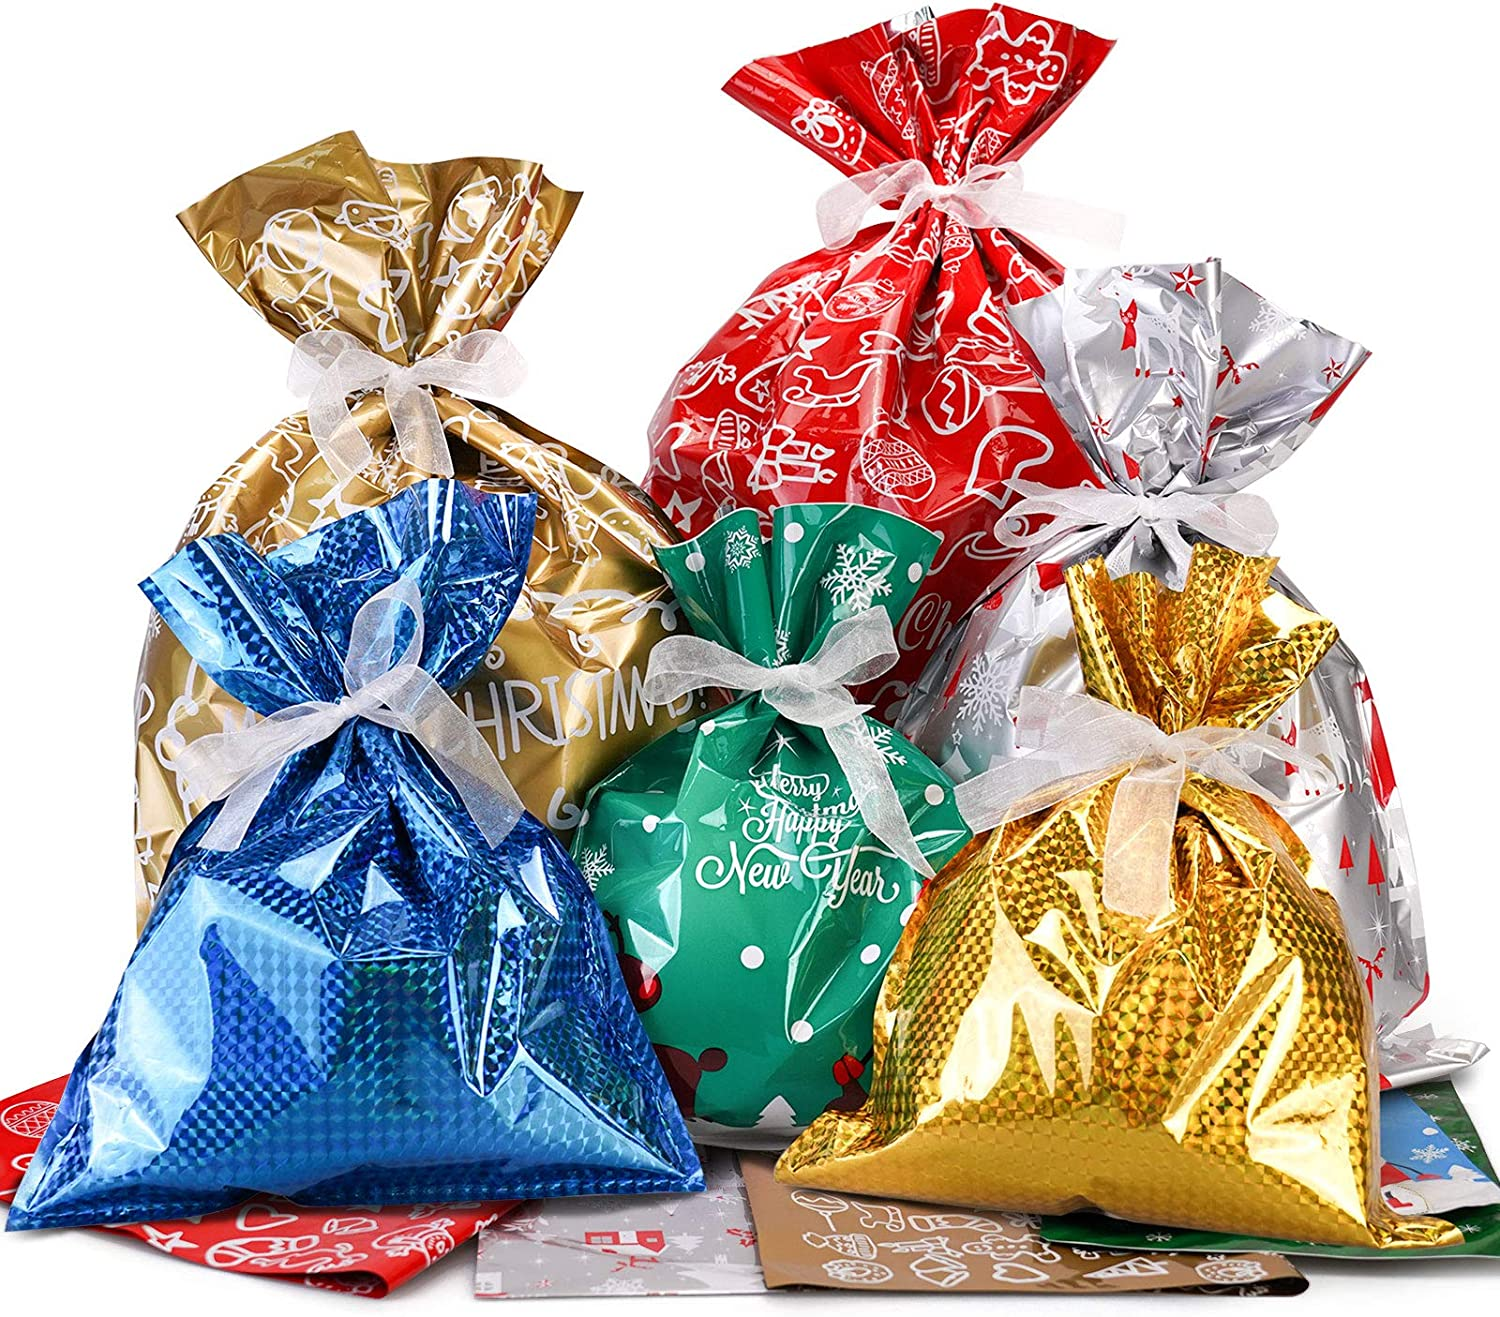 Christmas Goodie Bags with 20 Tags for Xmas Birthday Party Favor RFWIN Christmas Drawstring Gift Bags 20pcs Assorted Present Wrapping Bags